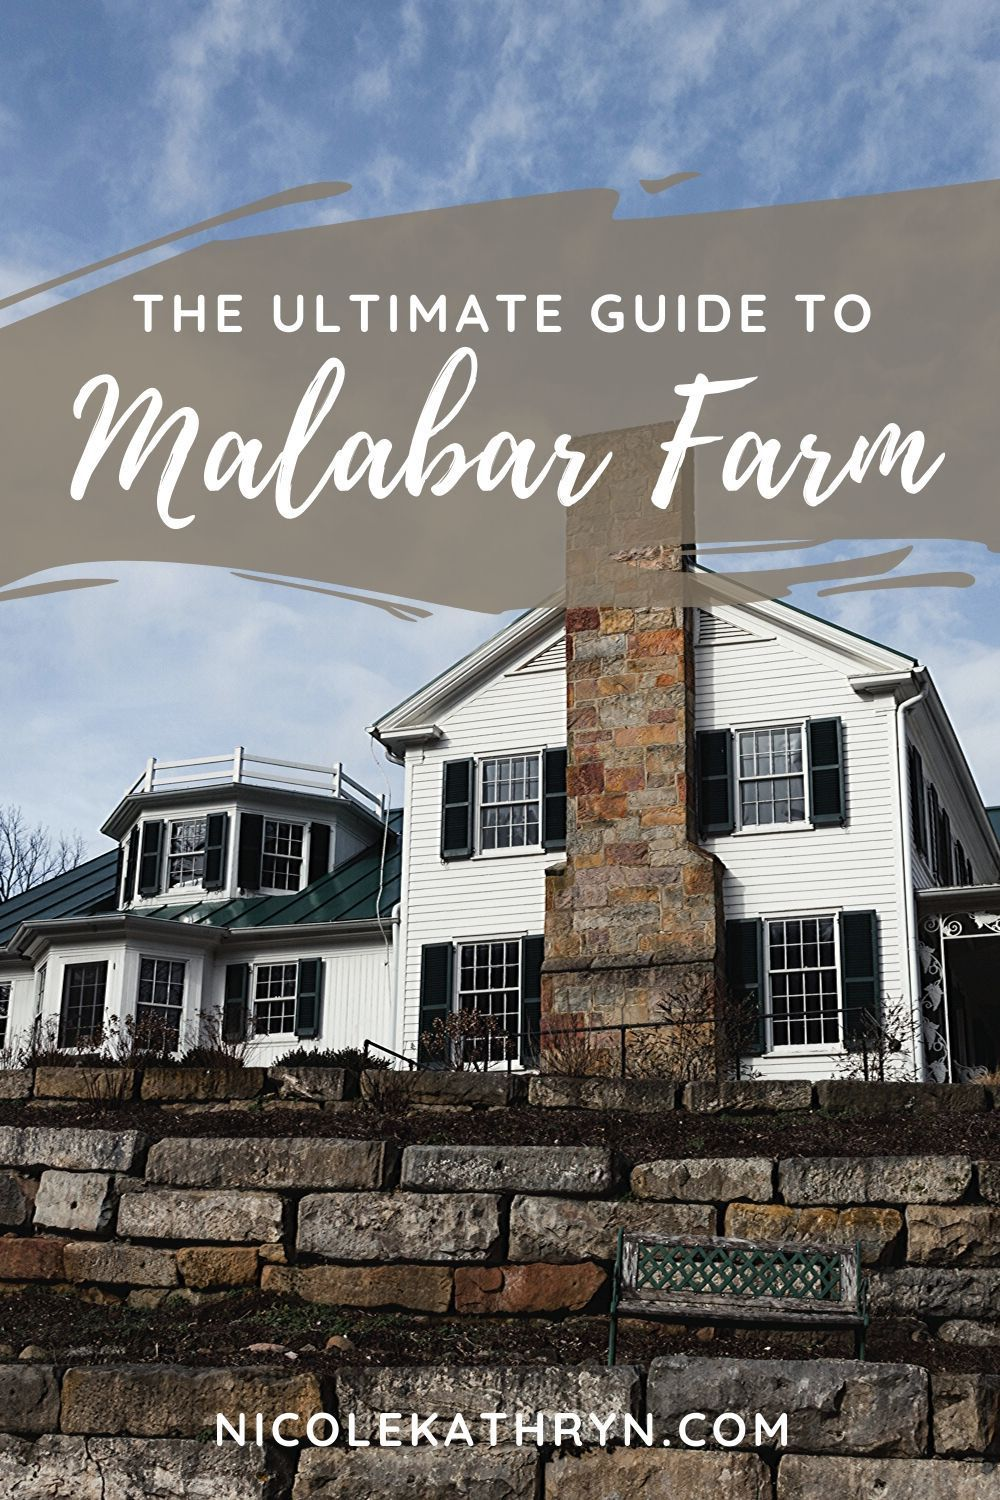 Considered one of America's most famous farms, yet somehow not widely known in Ohio; Malabar Farm State Park is a little hidden gem halfway between Cleveland and Columbus.Visit Ohio author Louis Bromfield's home or check out some spots from the Shawshank Redemption. // #malabarfarm #statepark #ohio #travel #guide #louisbromfield